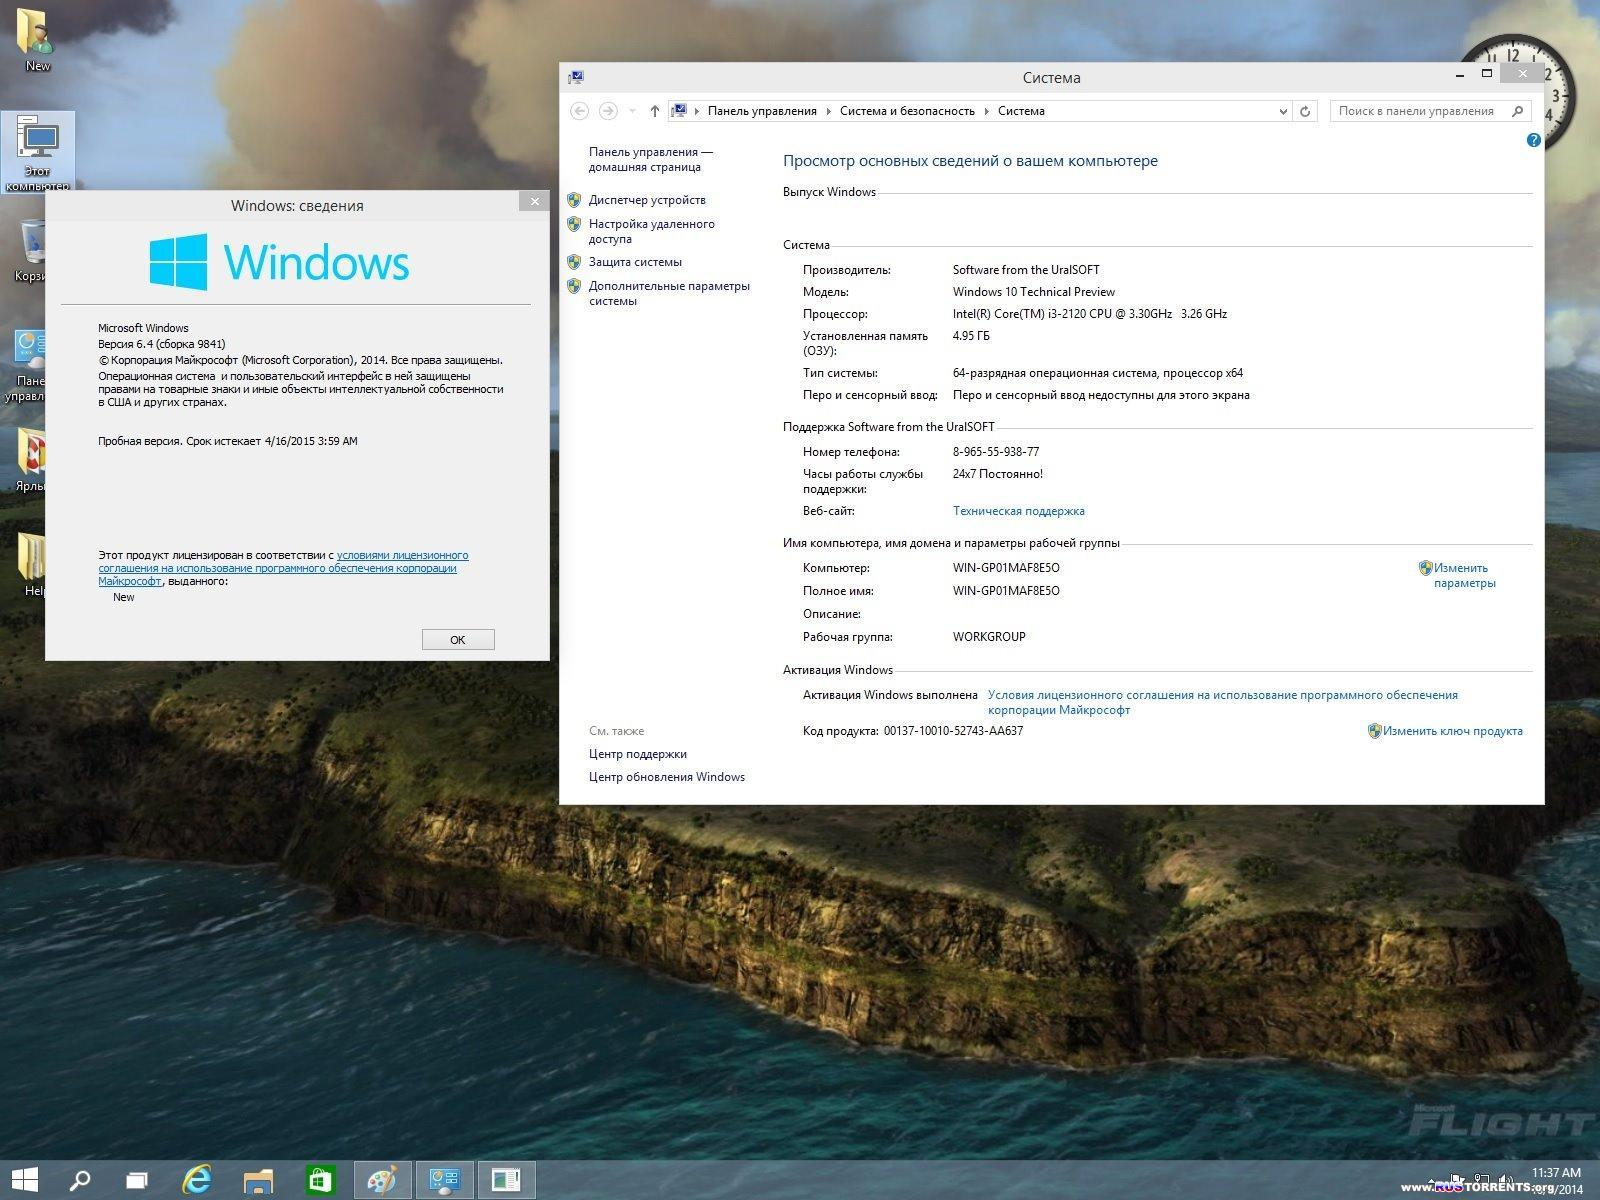 Windows 10 Technical Preview UralSOFT v.1.02  x64 (2014) [Rus]